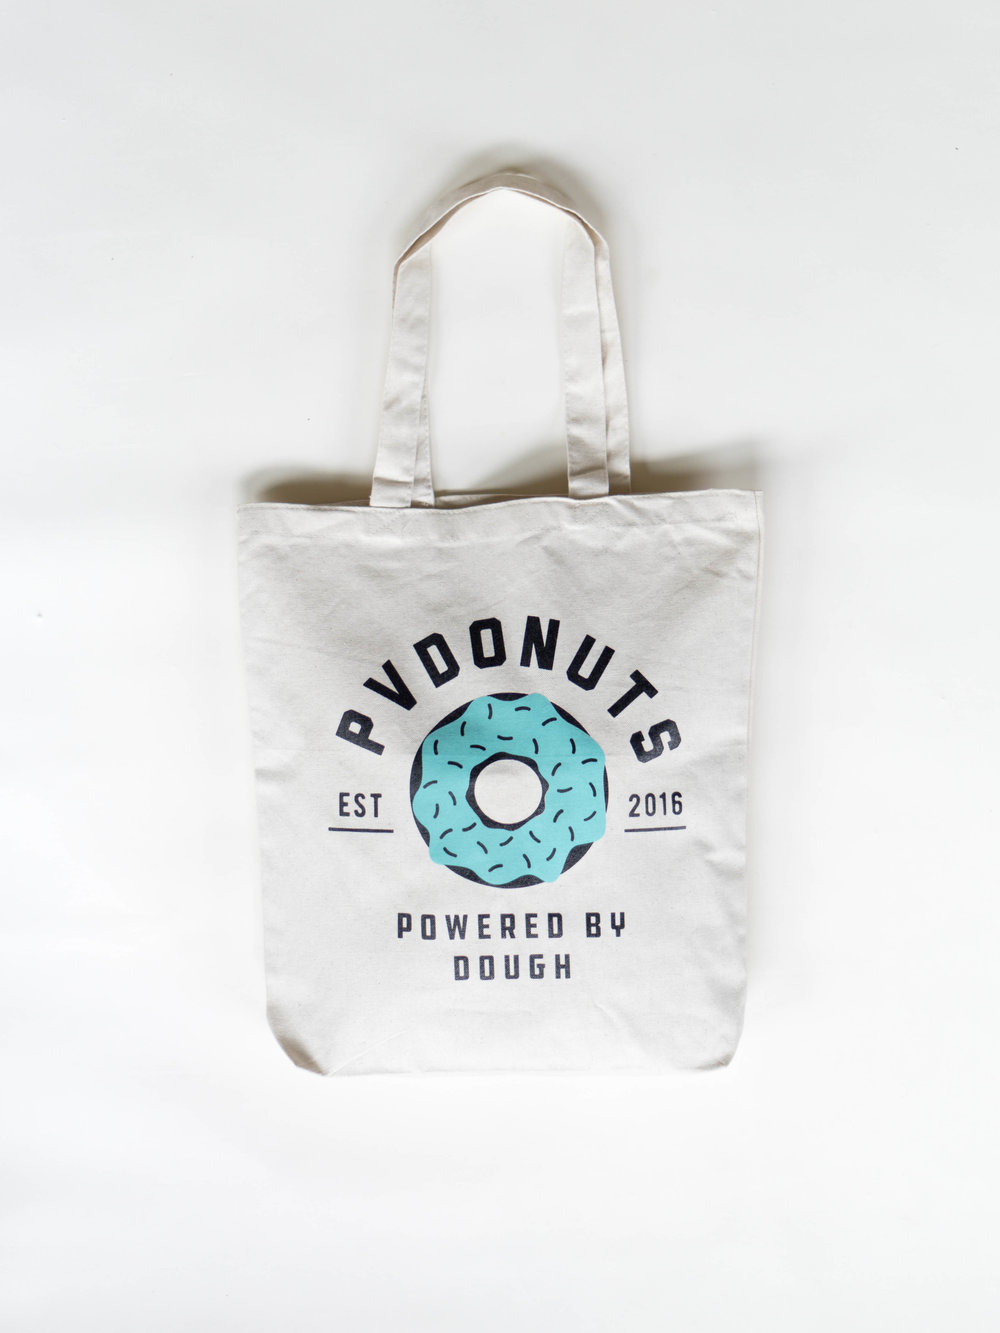 Powered by Dough Tote Bag - $12